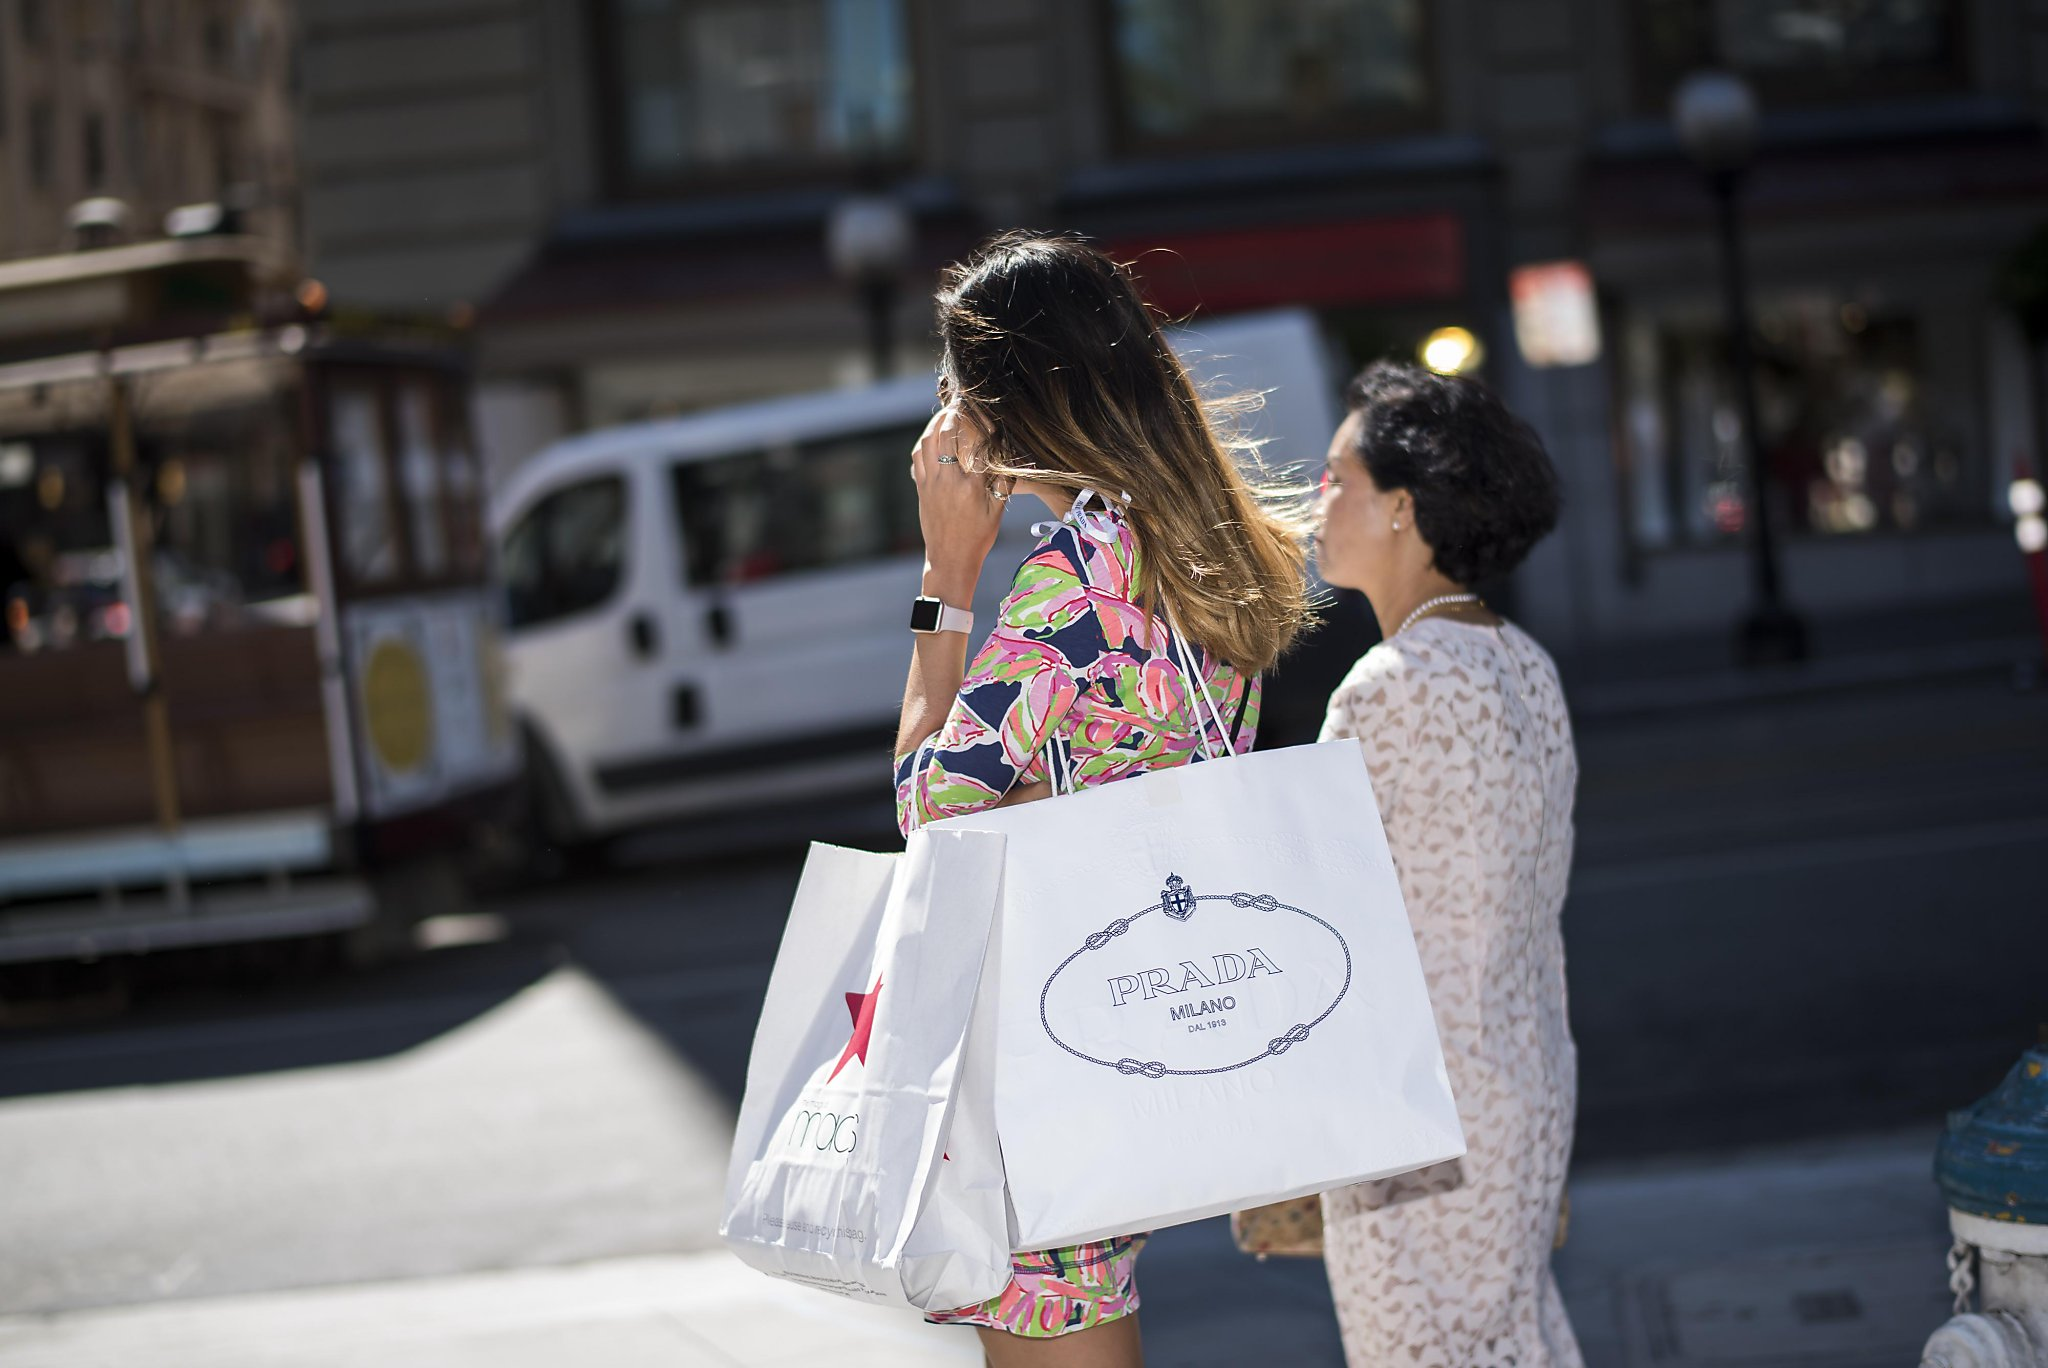 Retail sales slow, lowering expectation for economic growth - SFGate